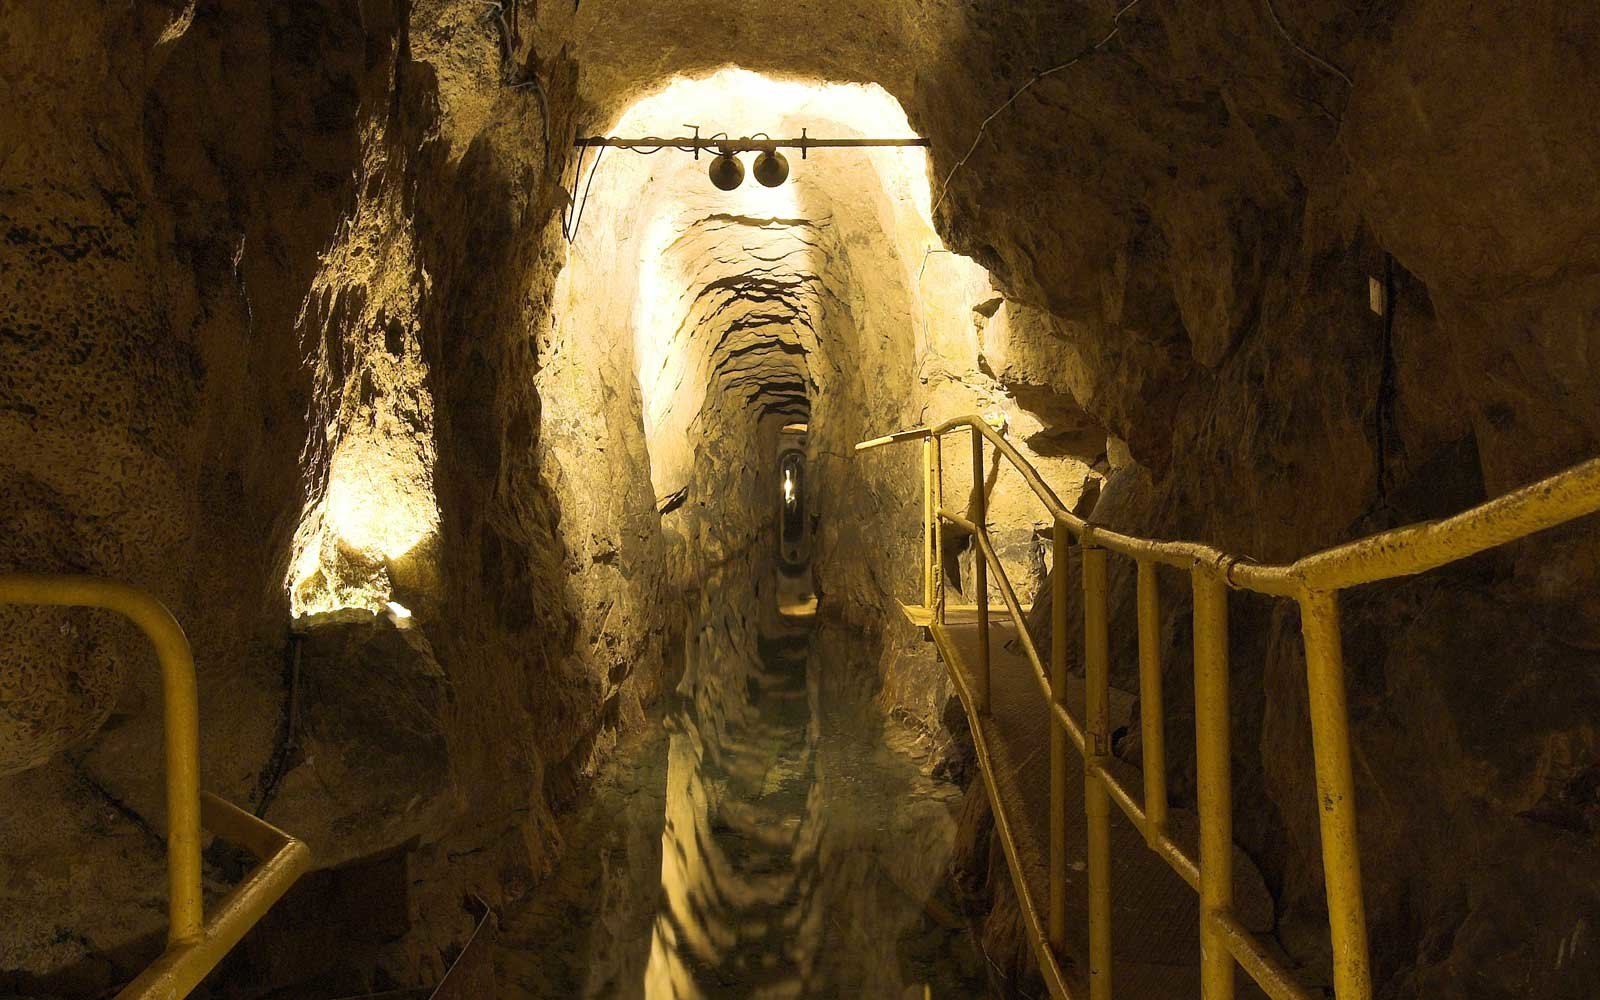 Tarnowski Gory Mine in Poland Becomes UNESCO site